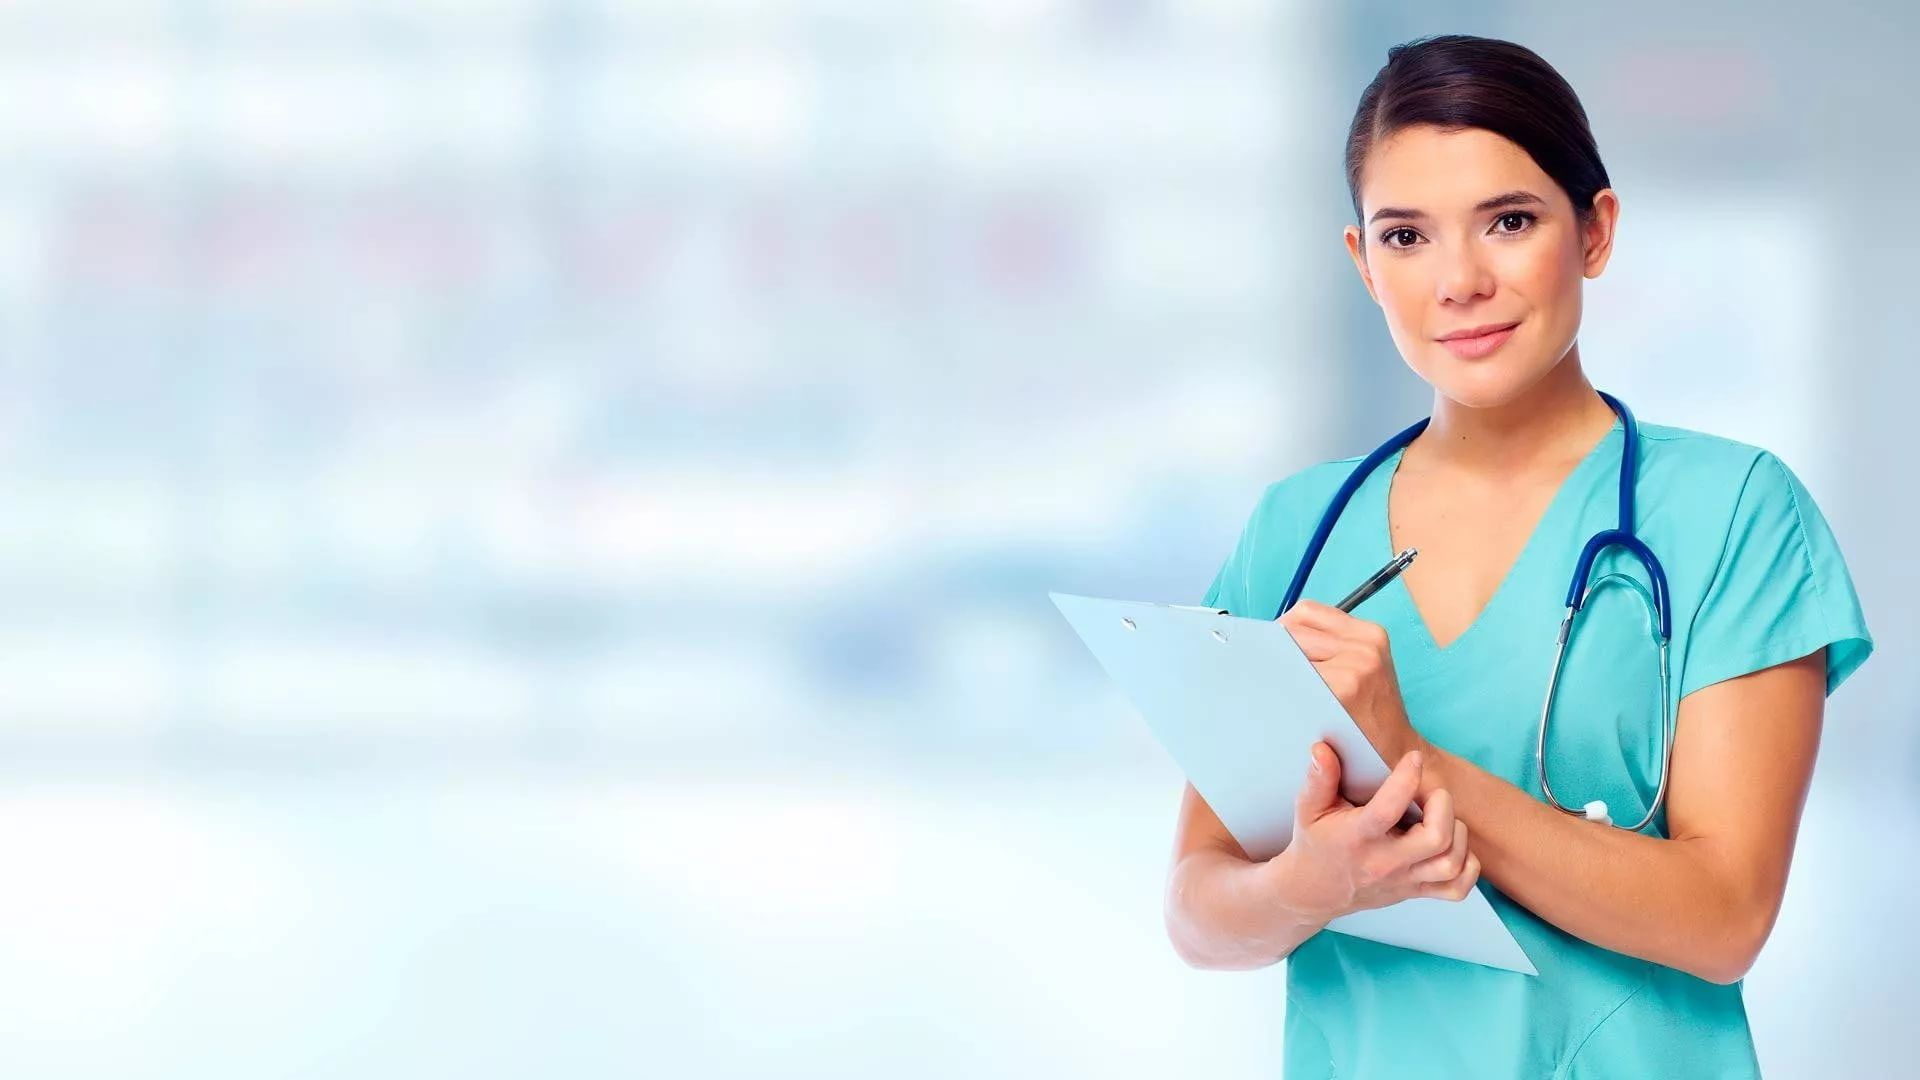 Medical download free wallpapers for pc in hd